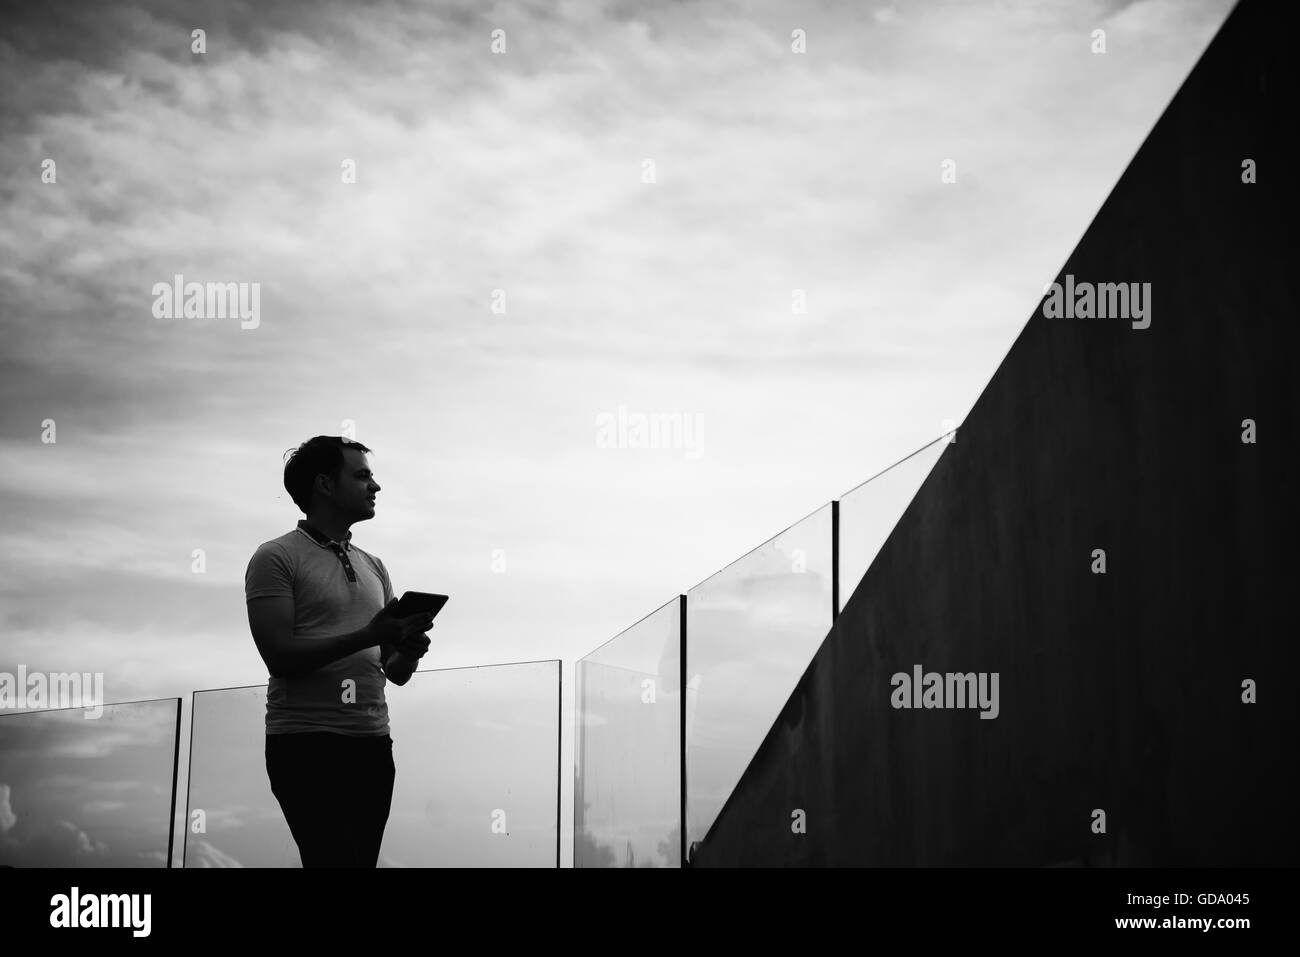 Silhouette of young business man using tablet outdoors Stock Photo